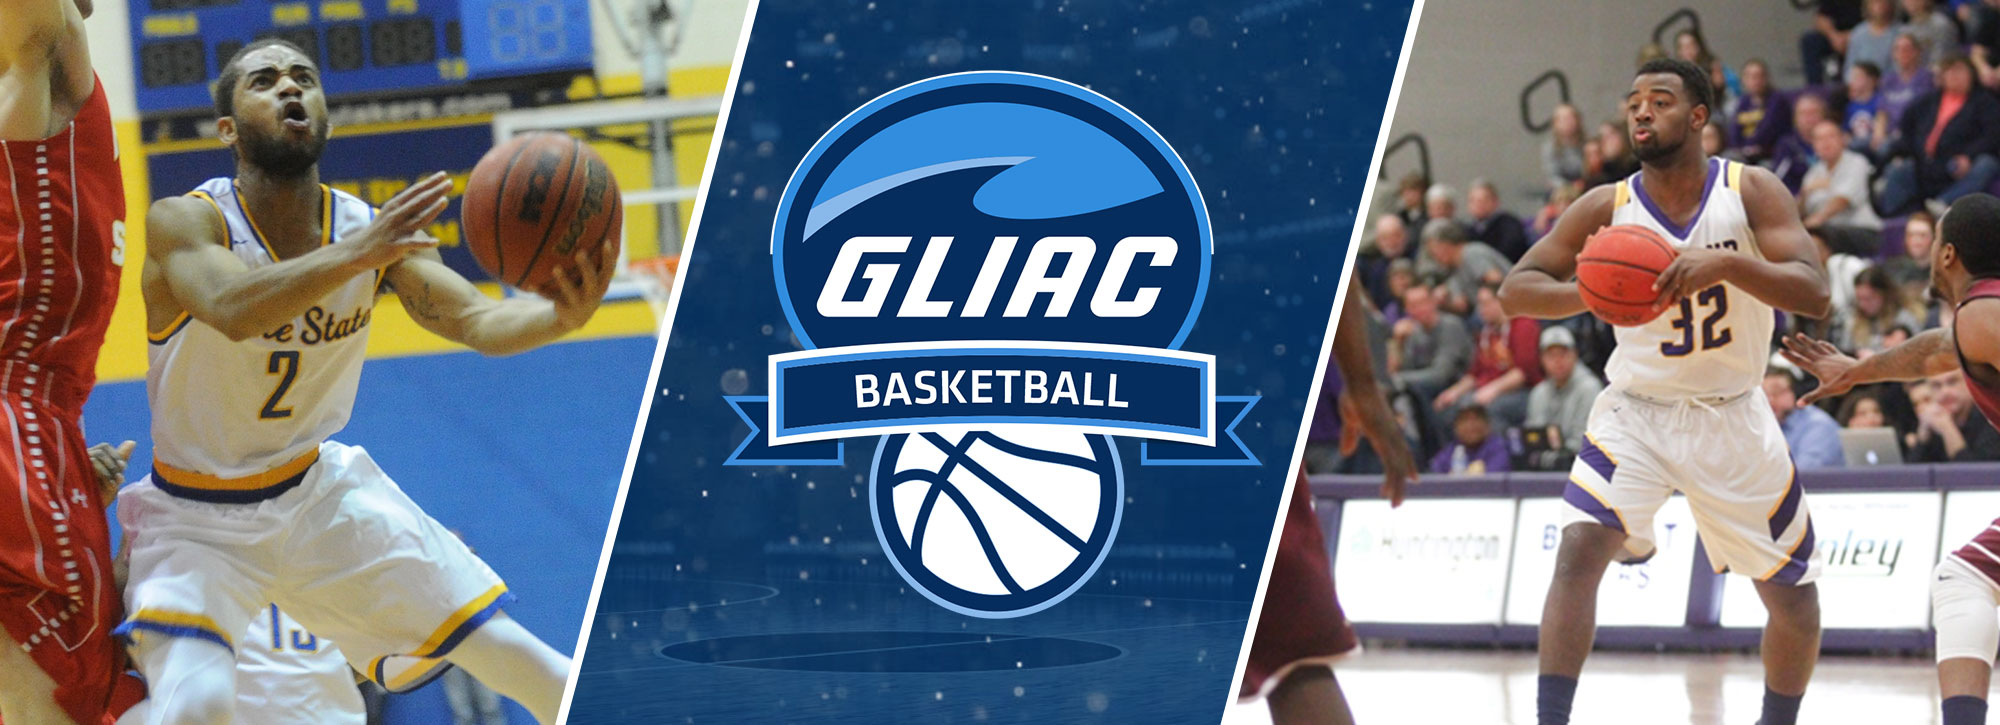 LSSU's Williams, Ashland's Davis Capture GLIAC Player of the Week Honors